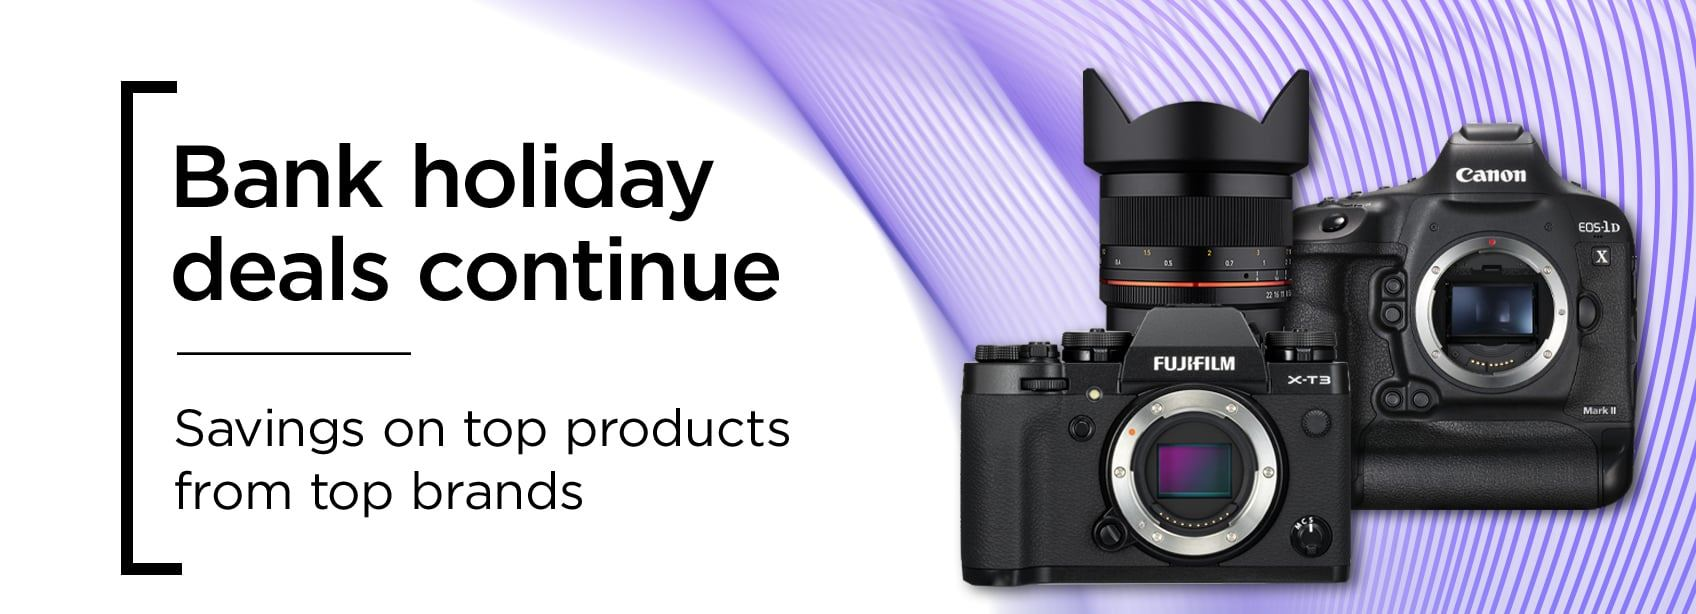 Bank holiday deals continue